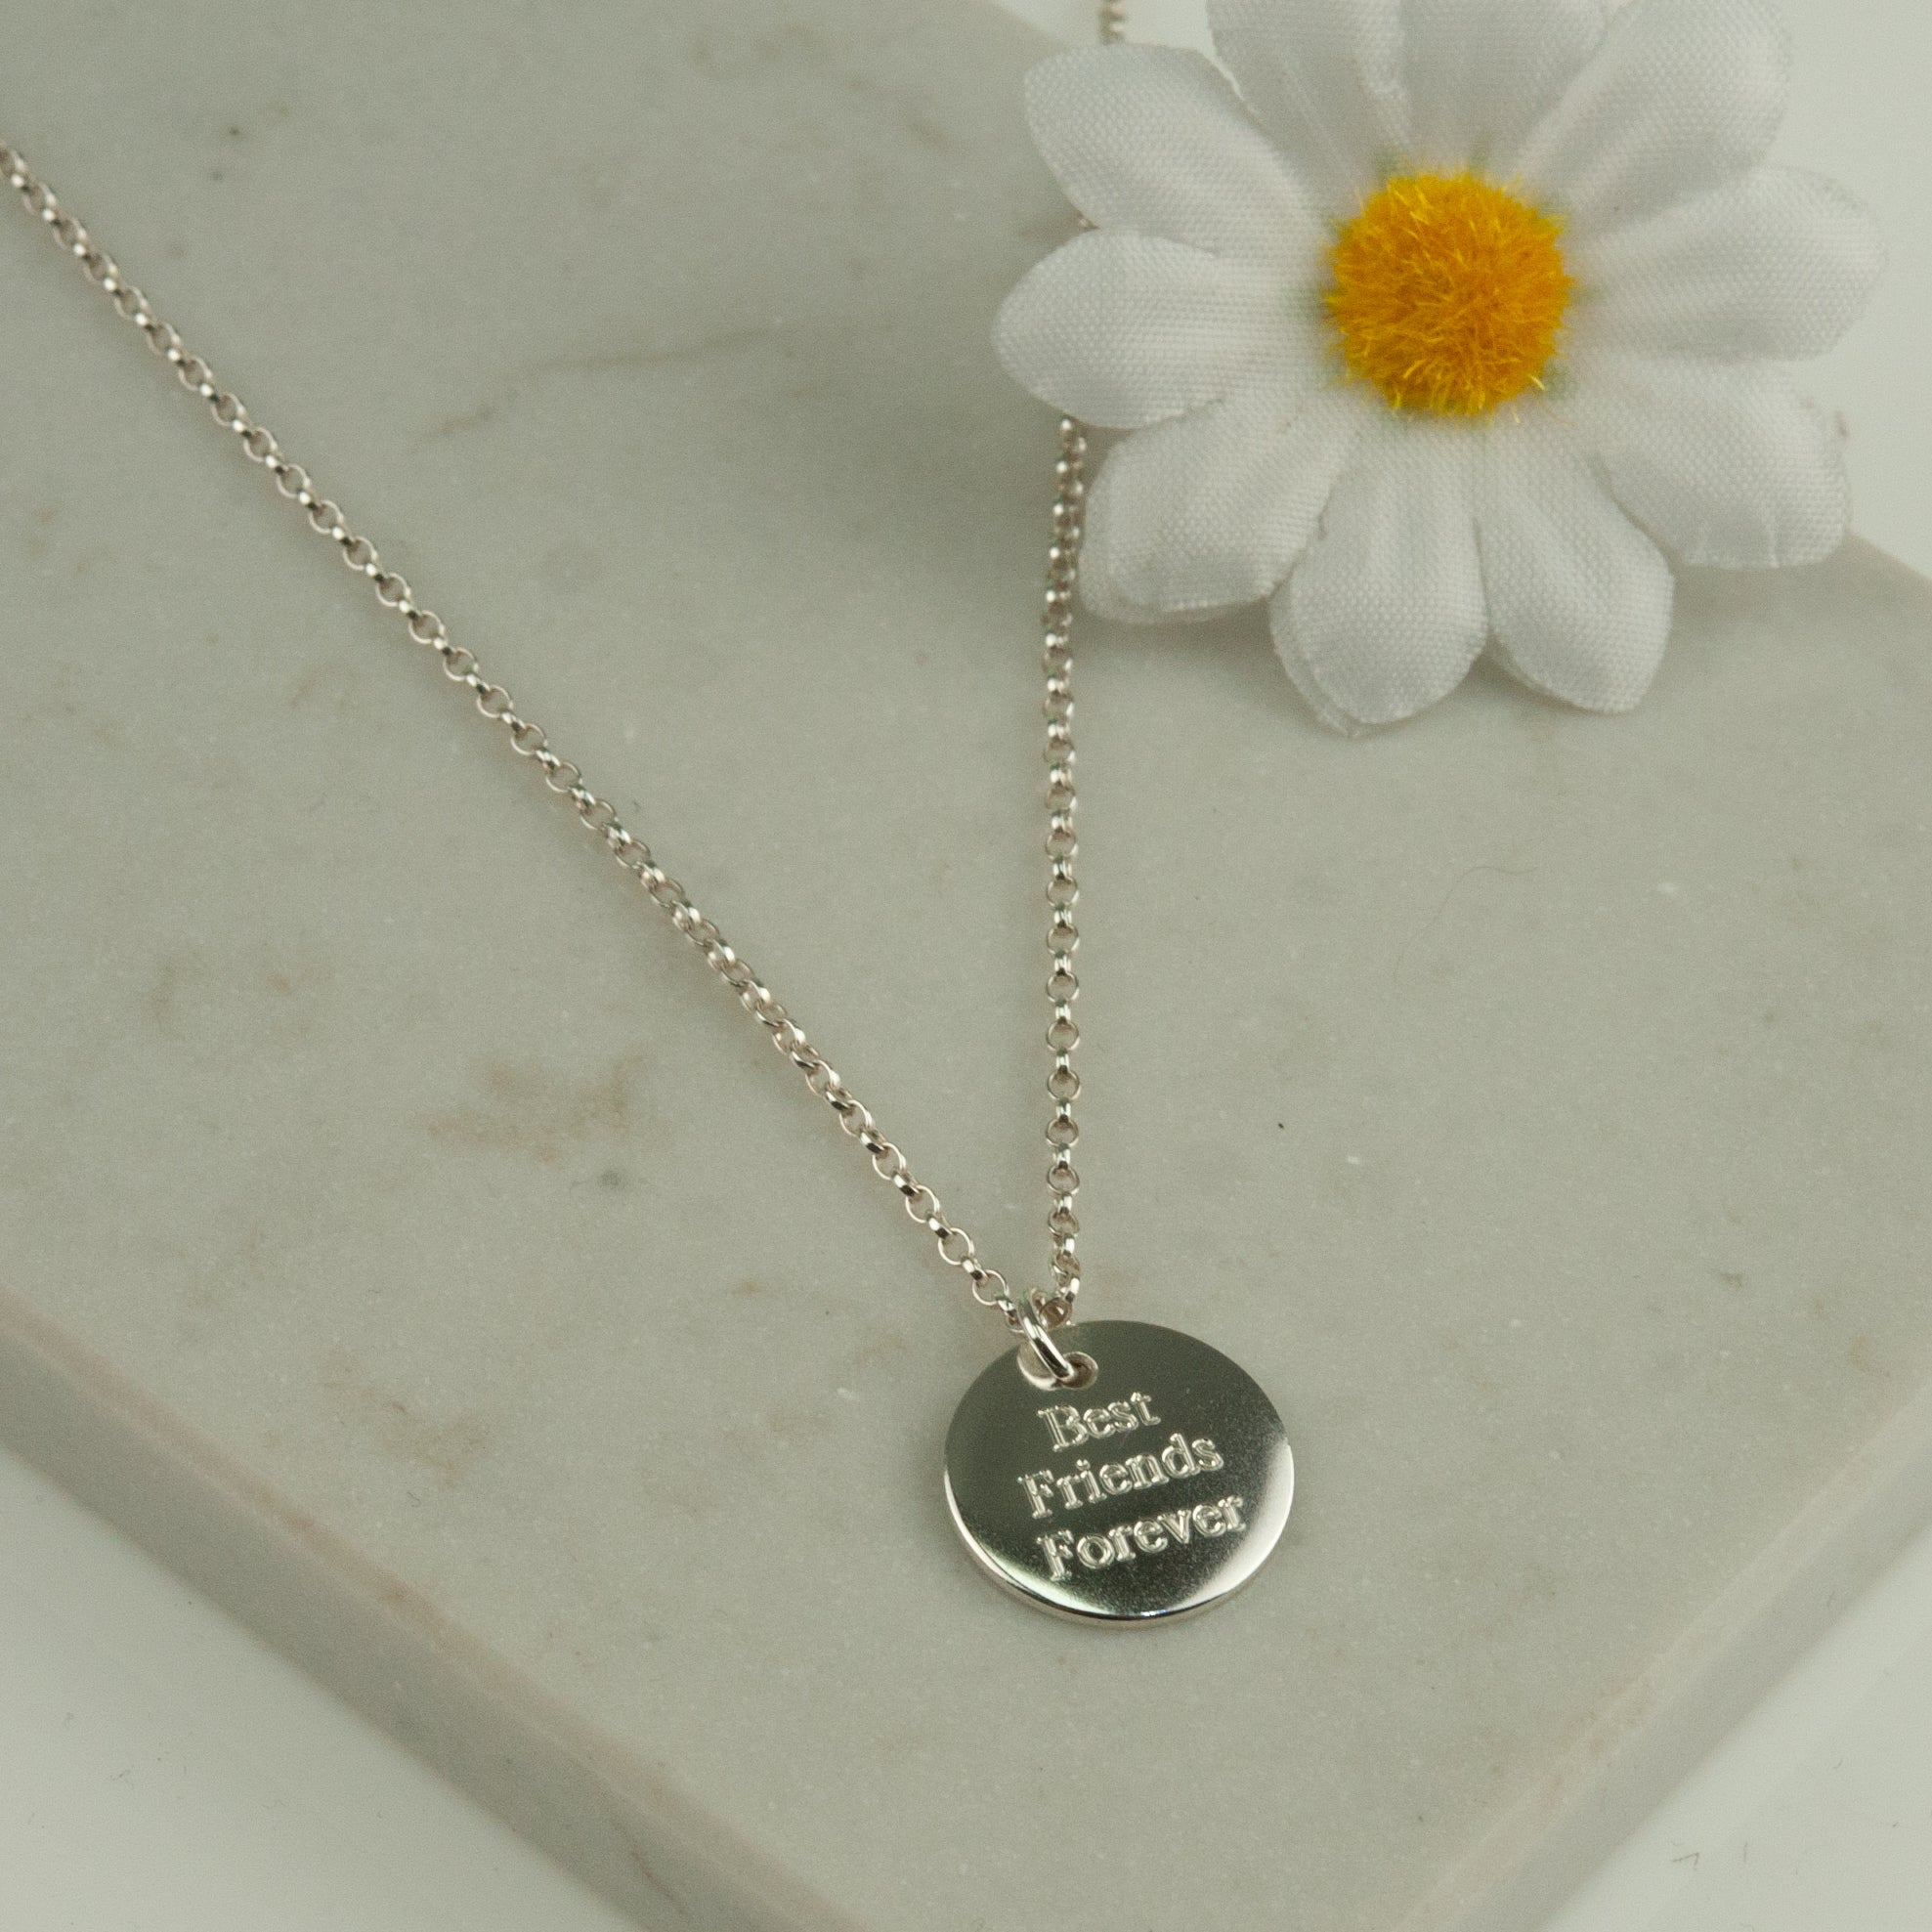 Belle & Bee quote disc necklace